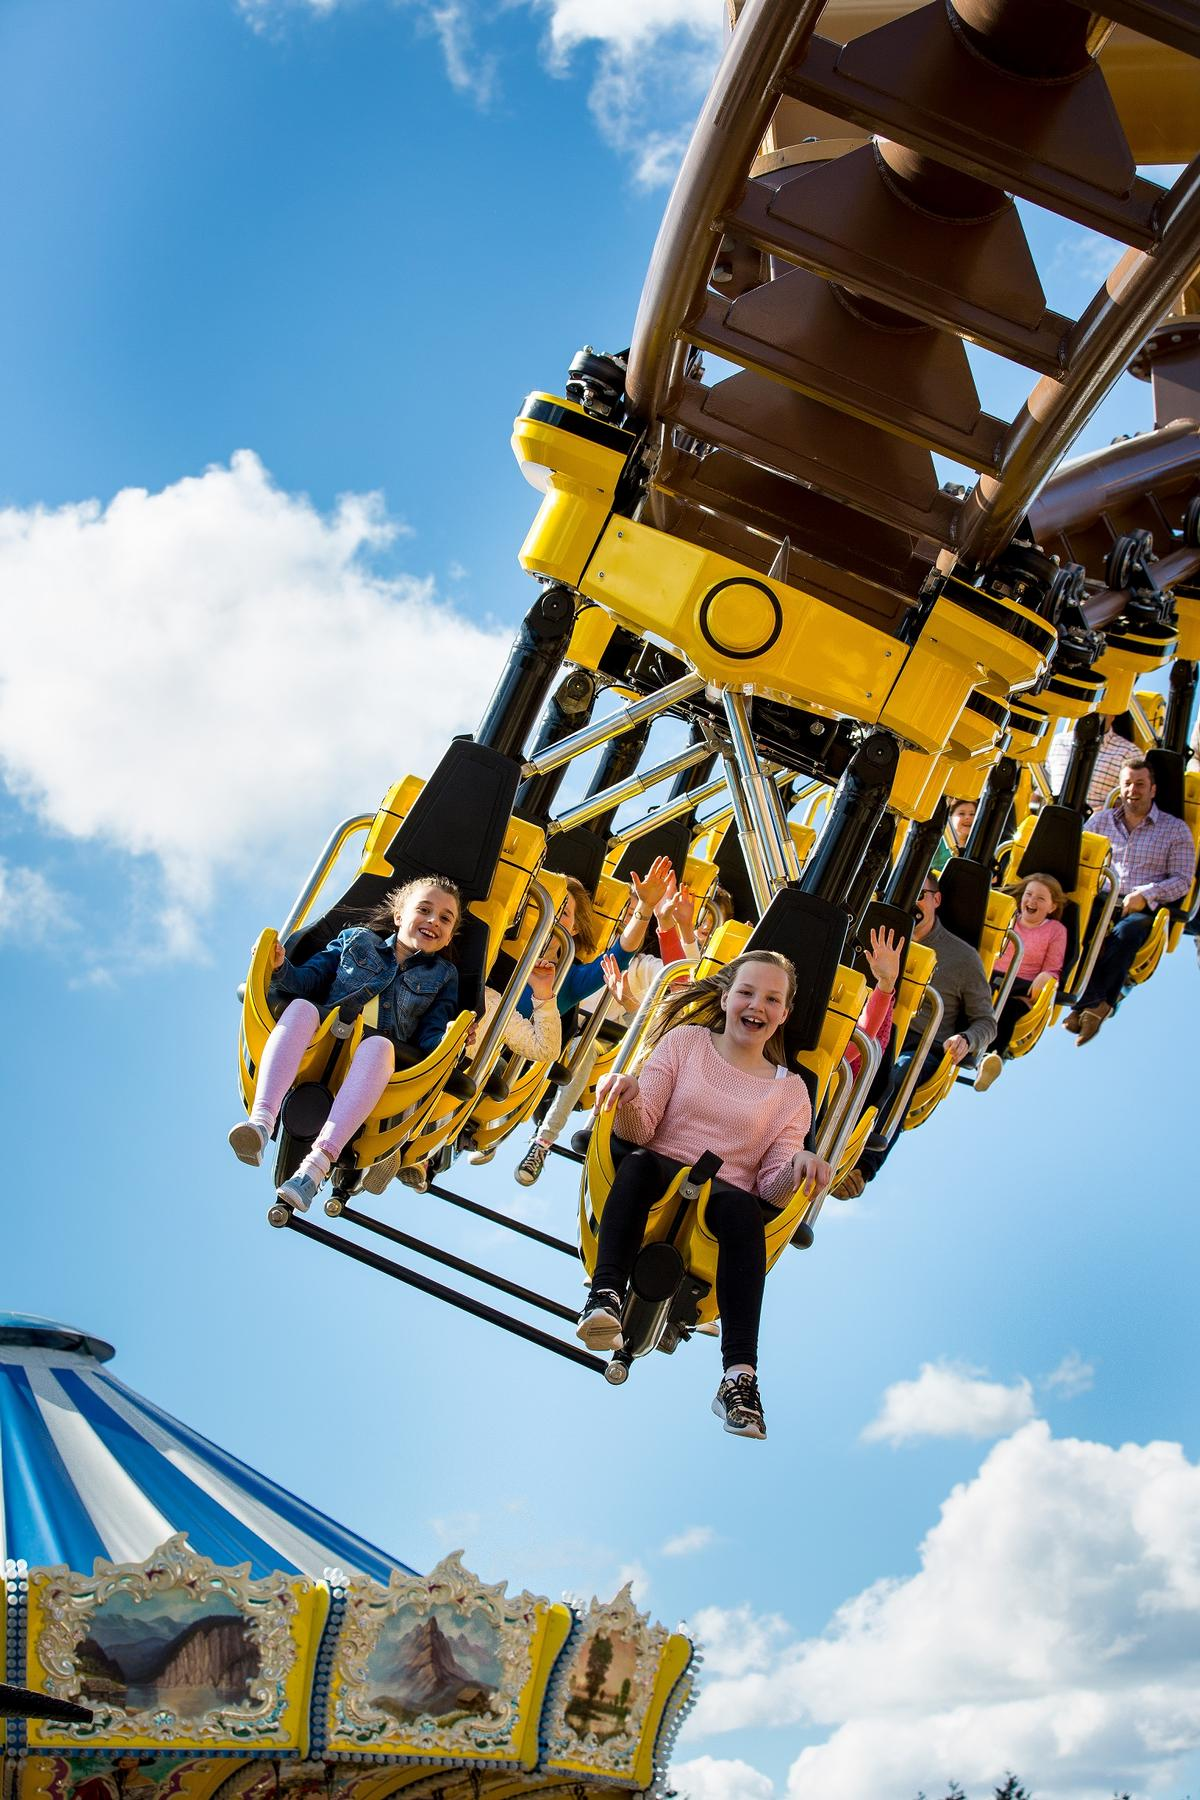 Flight of the Pterosaur is a 55kmh suspended coaster